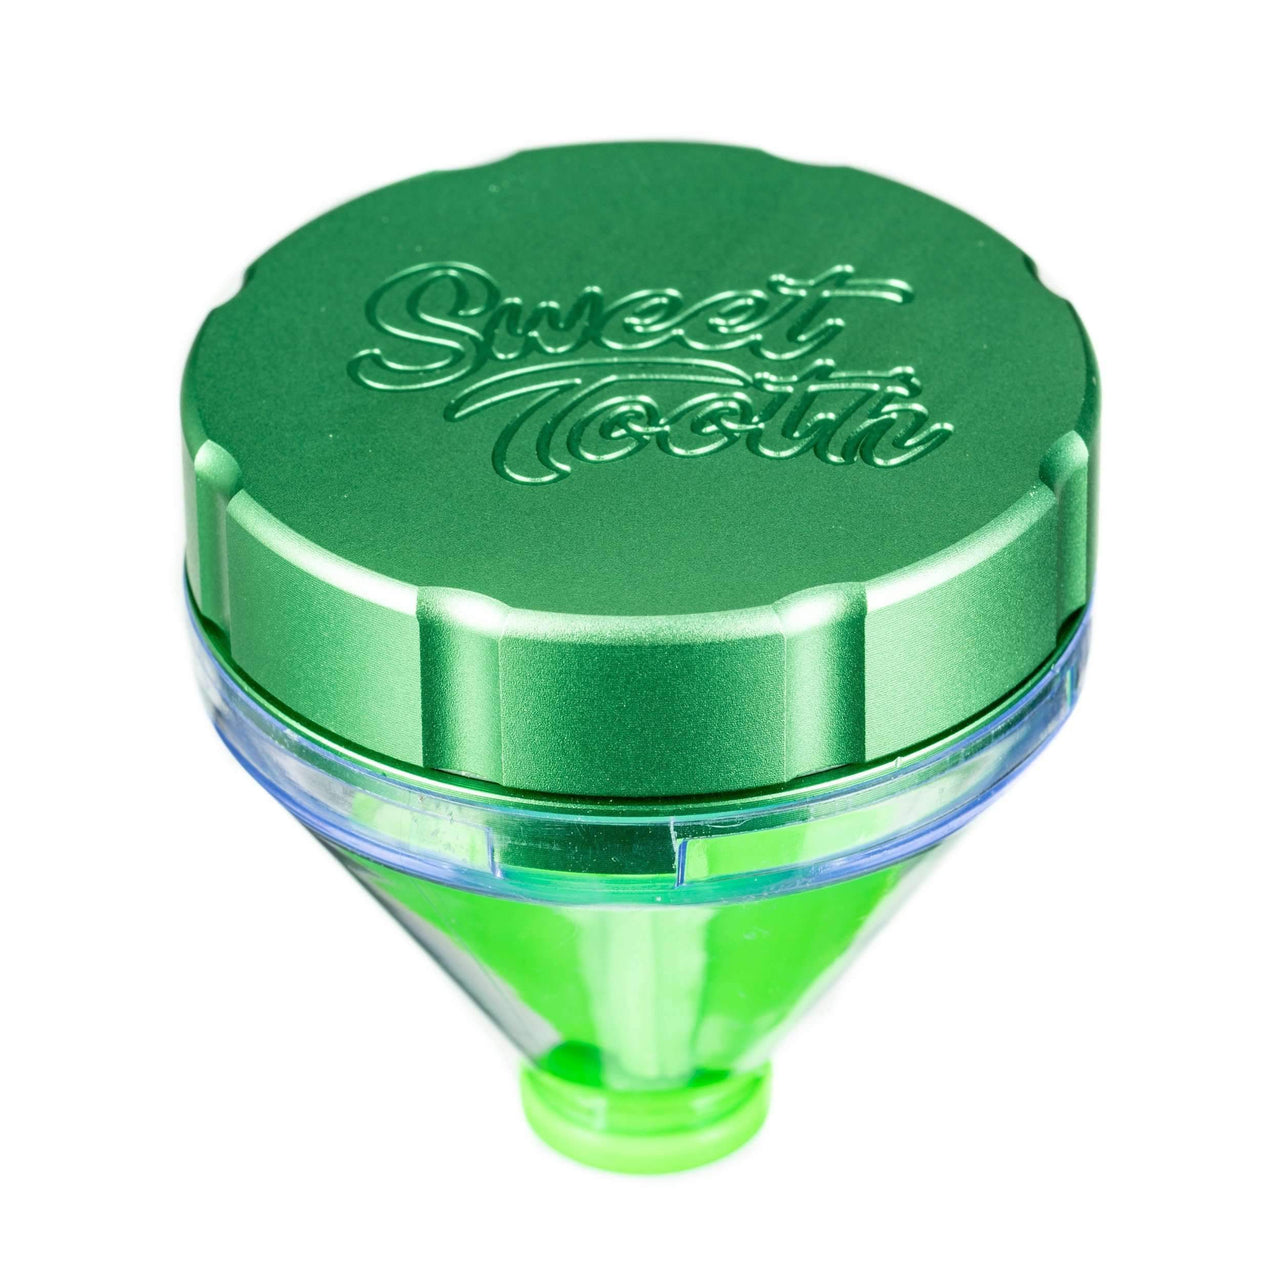 Sweet Tooth Funnel Aluminum Grinder - Green | The710Source.com